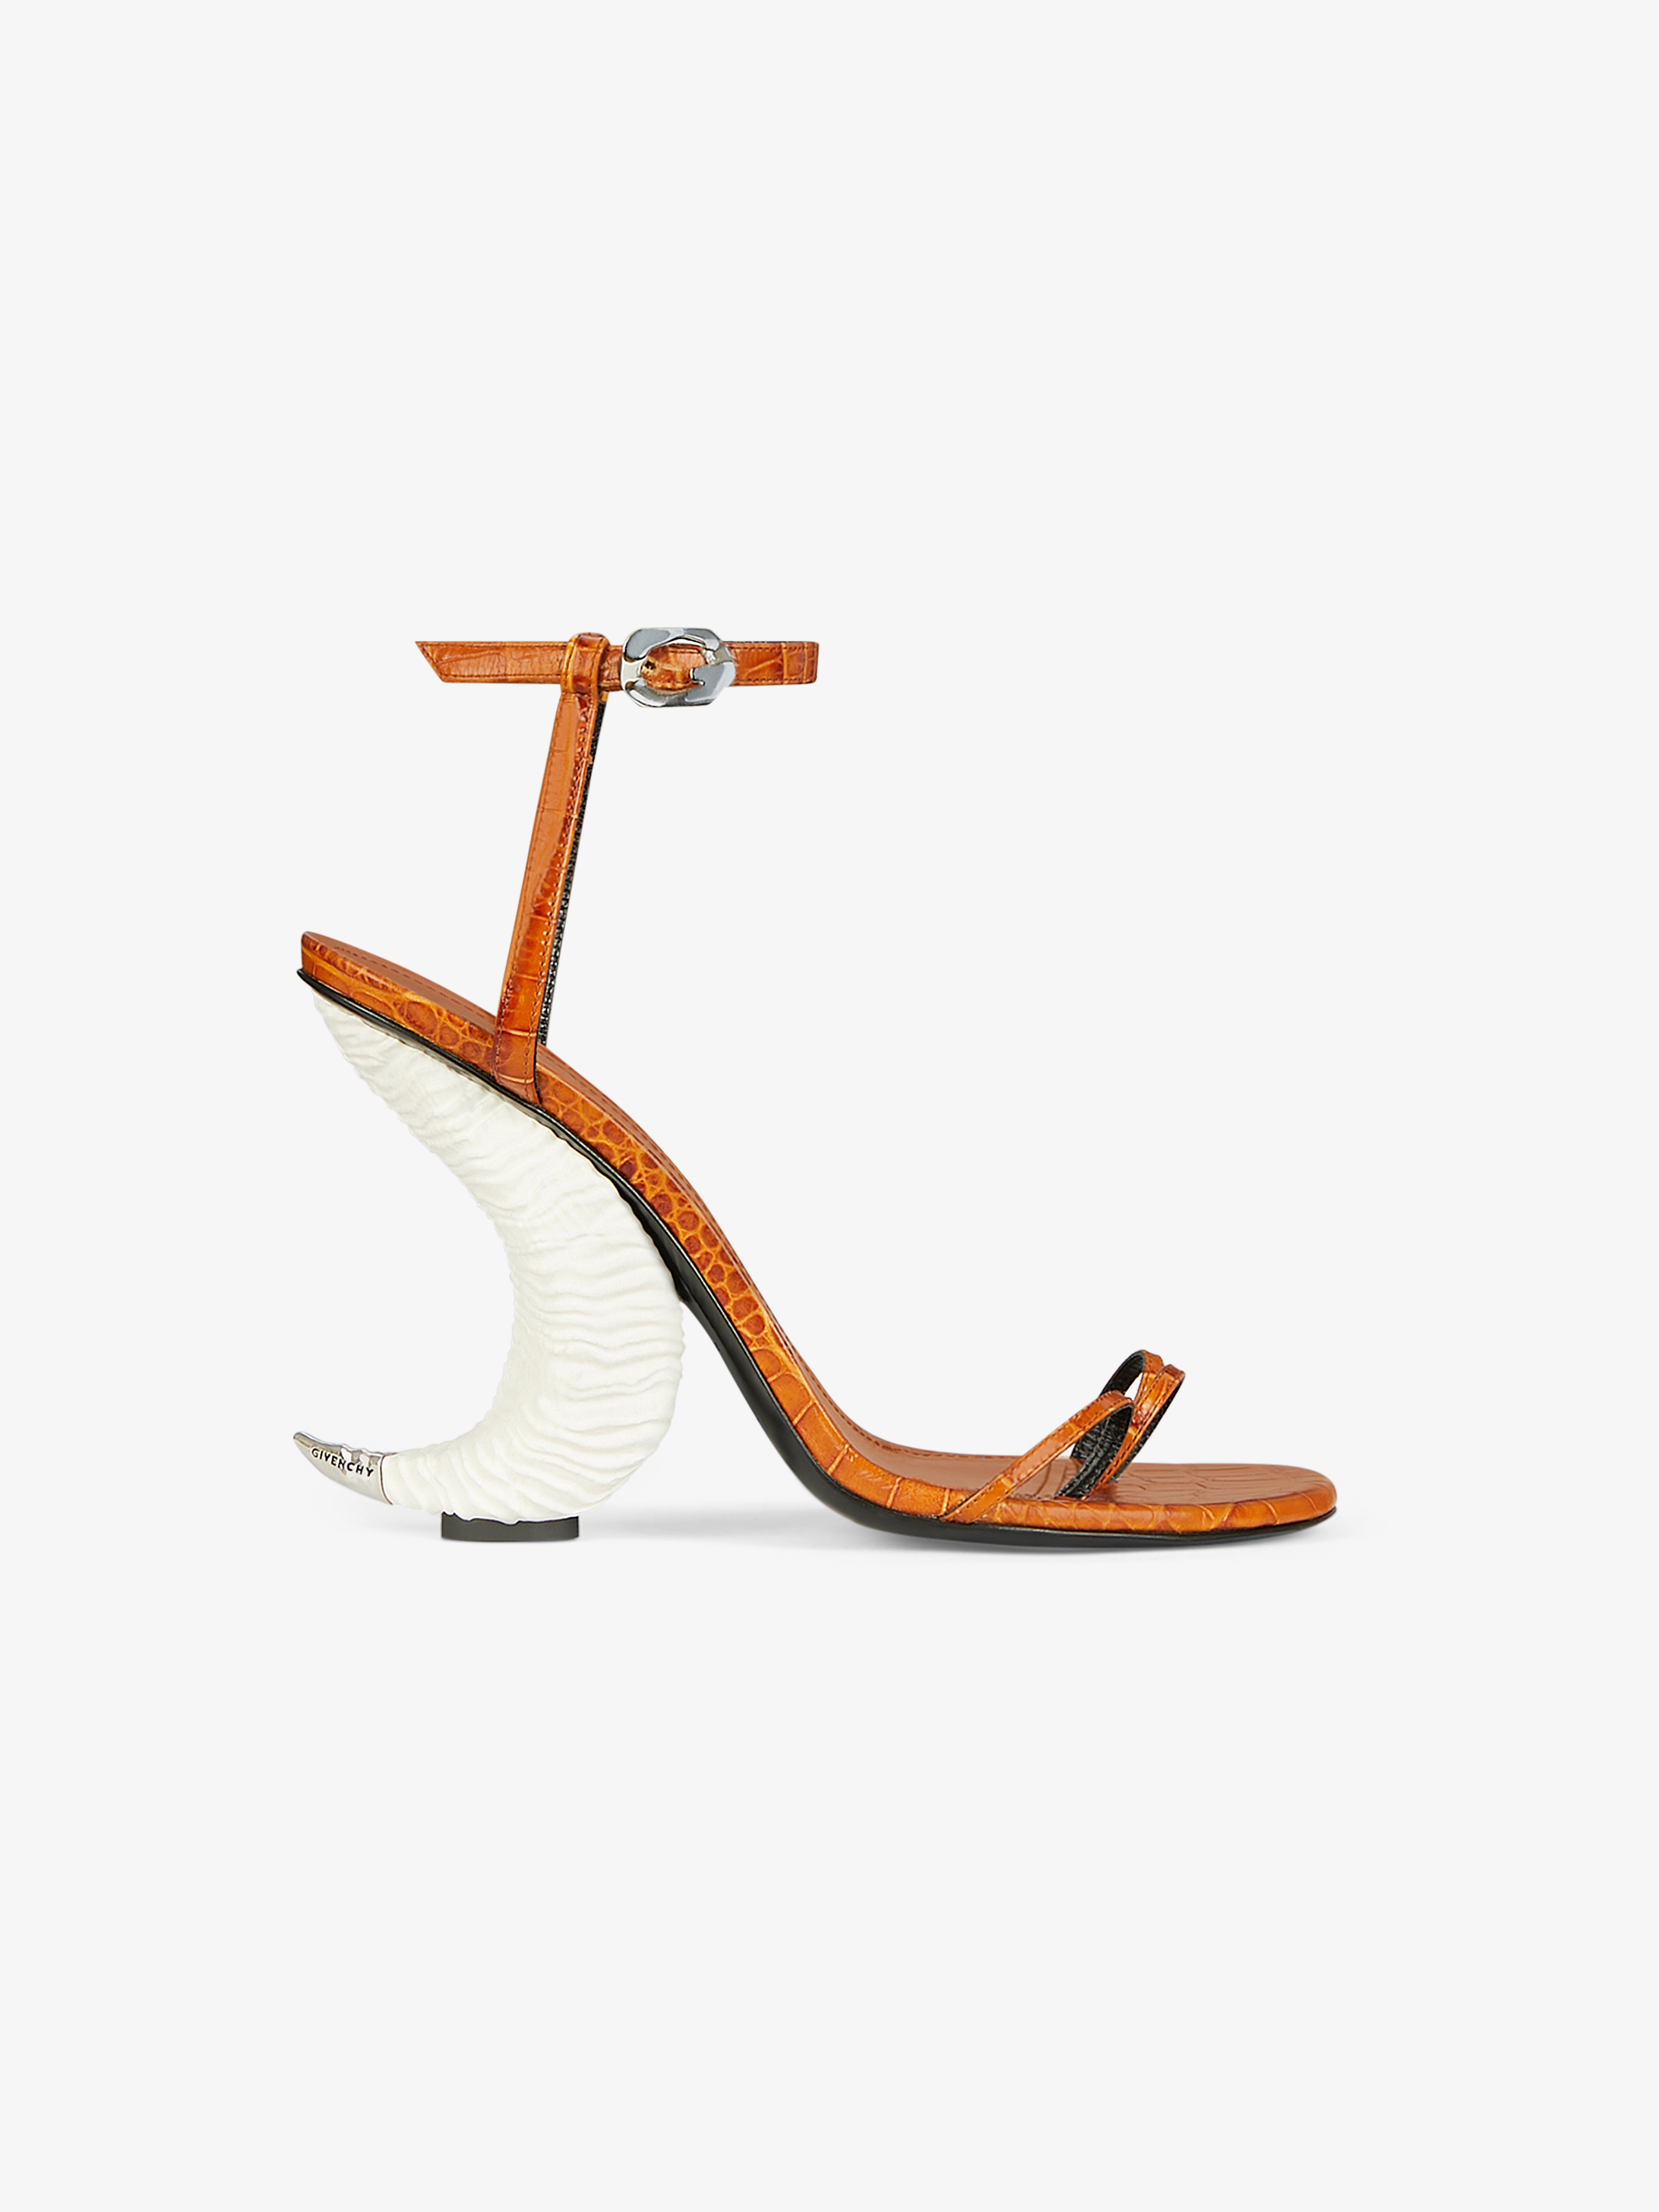 Triple toes sandals in crocodile effect leather with horn heel